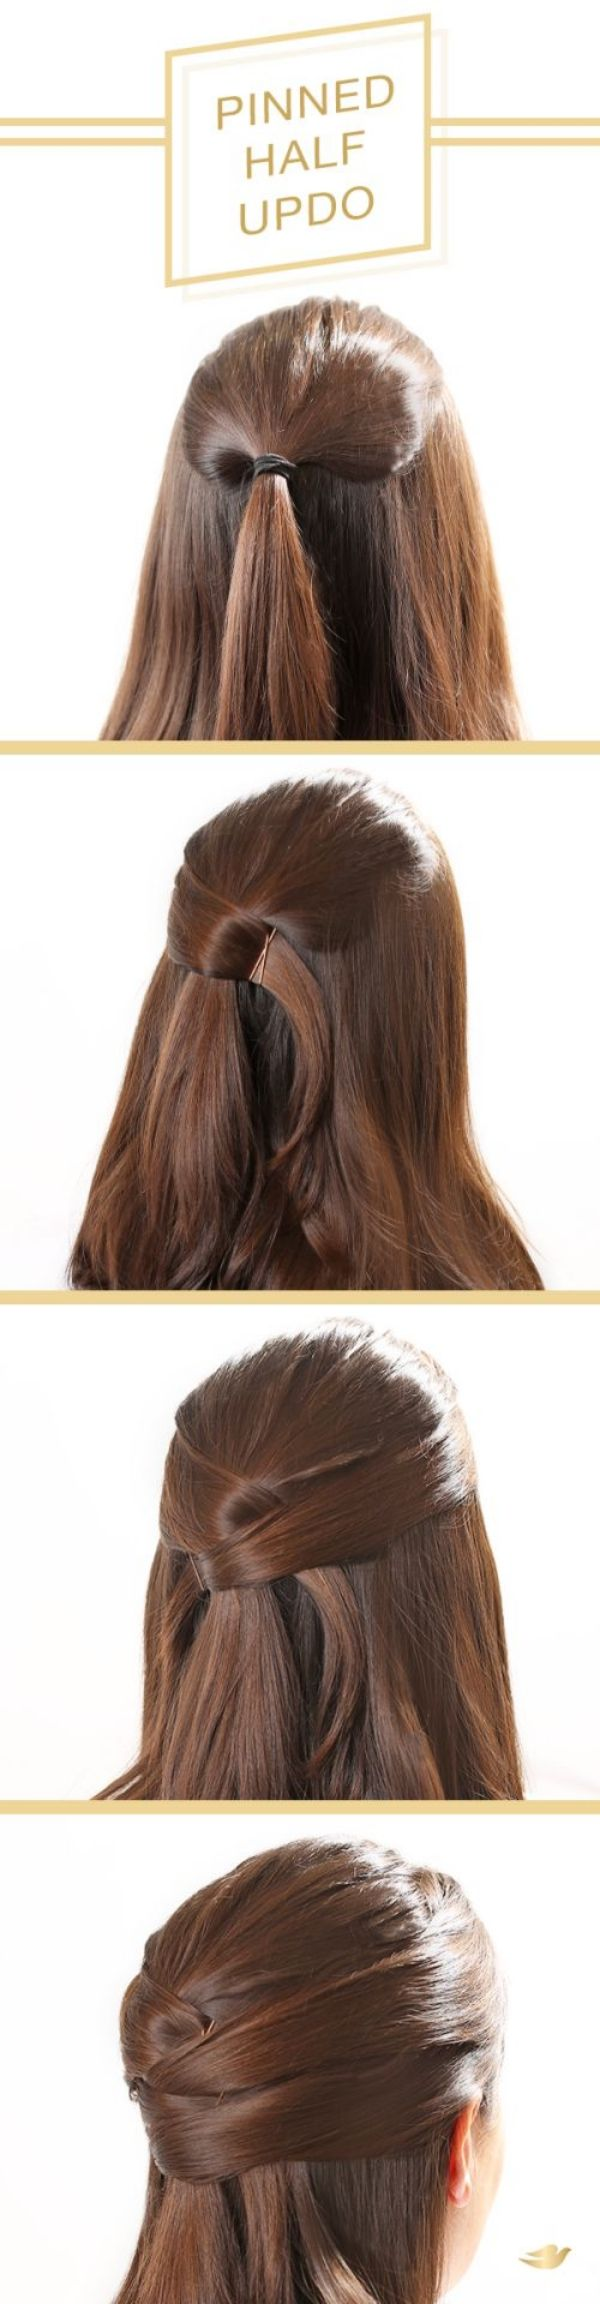 best 10+ job interview hairstyles ideas on pinterest | interview